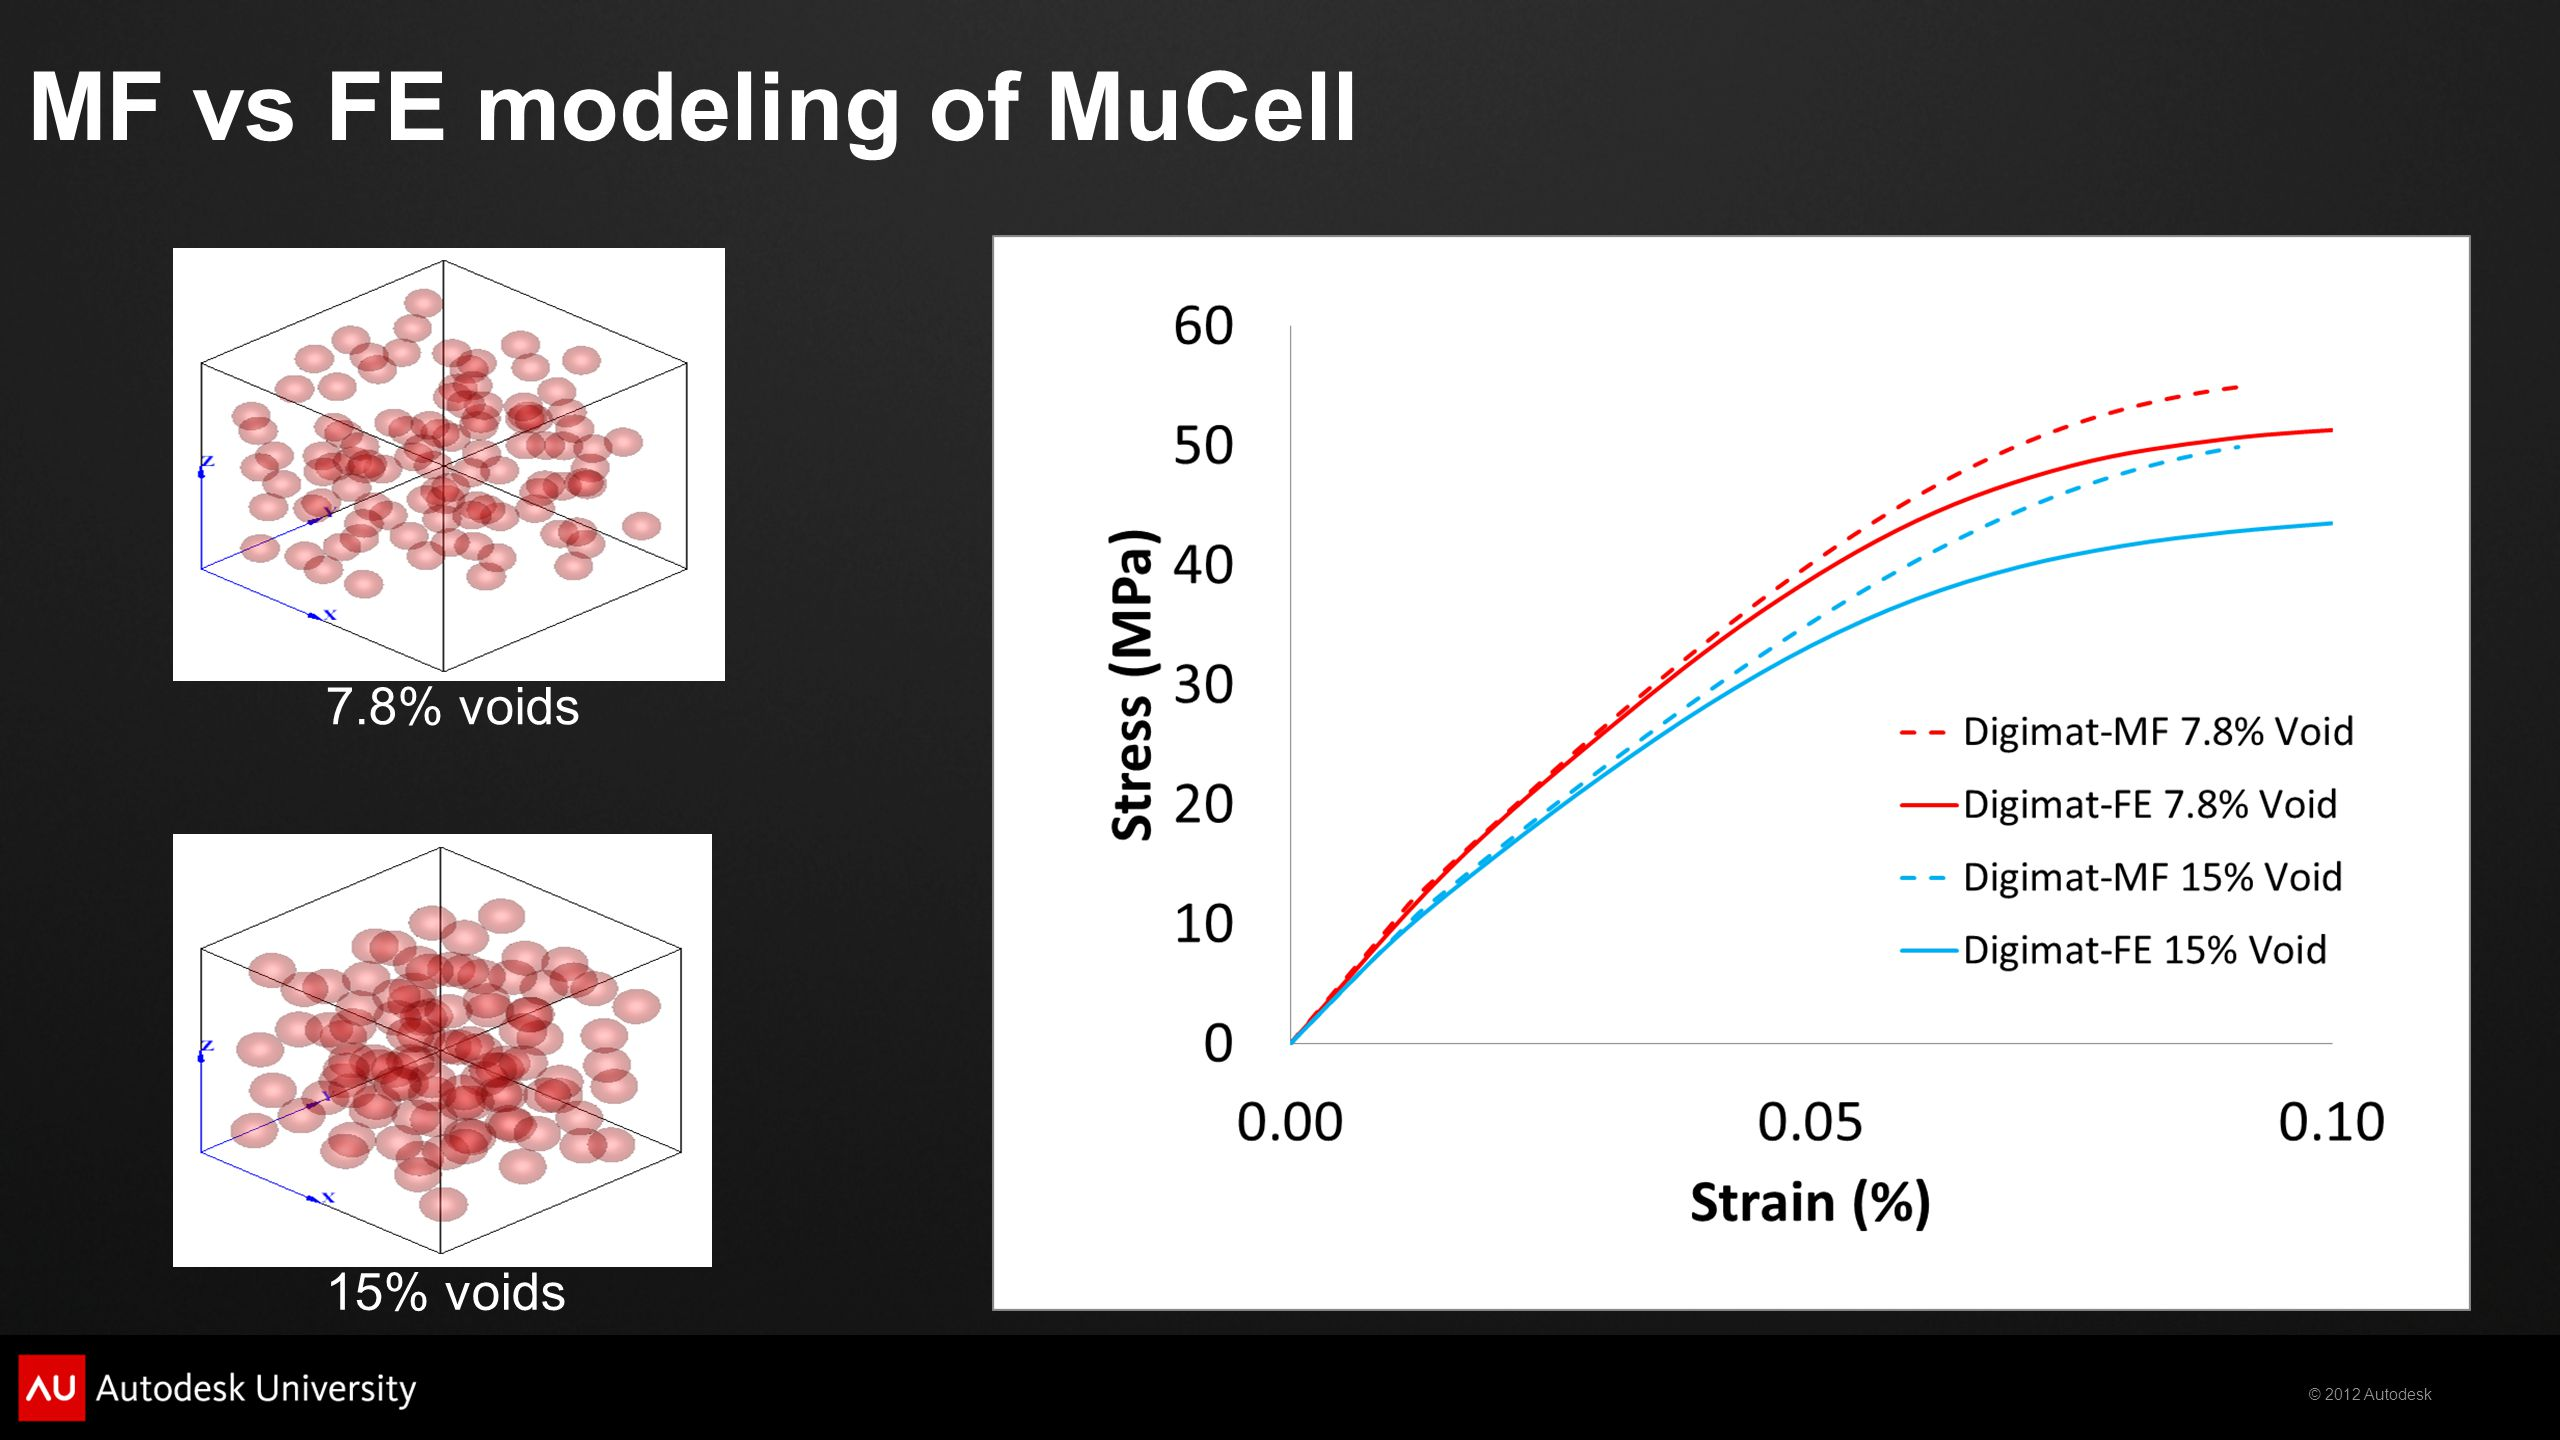 MF vs FE modeling of MuCell